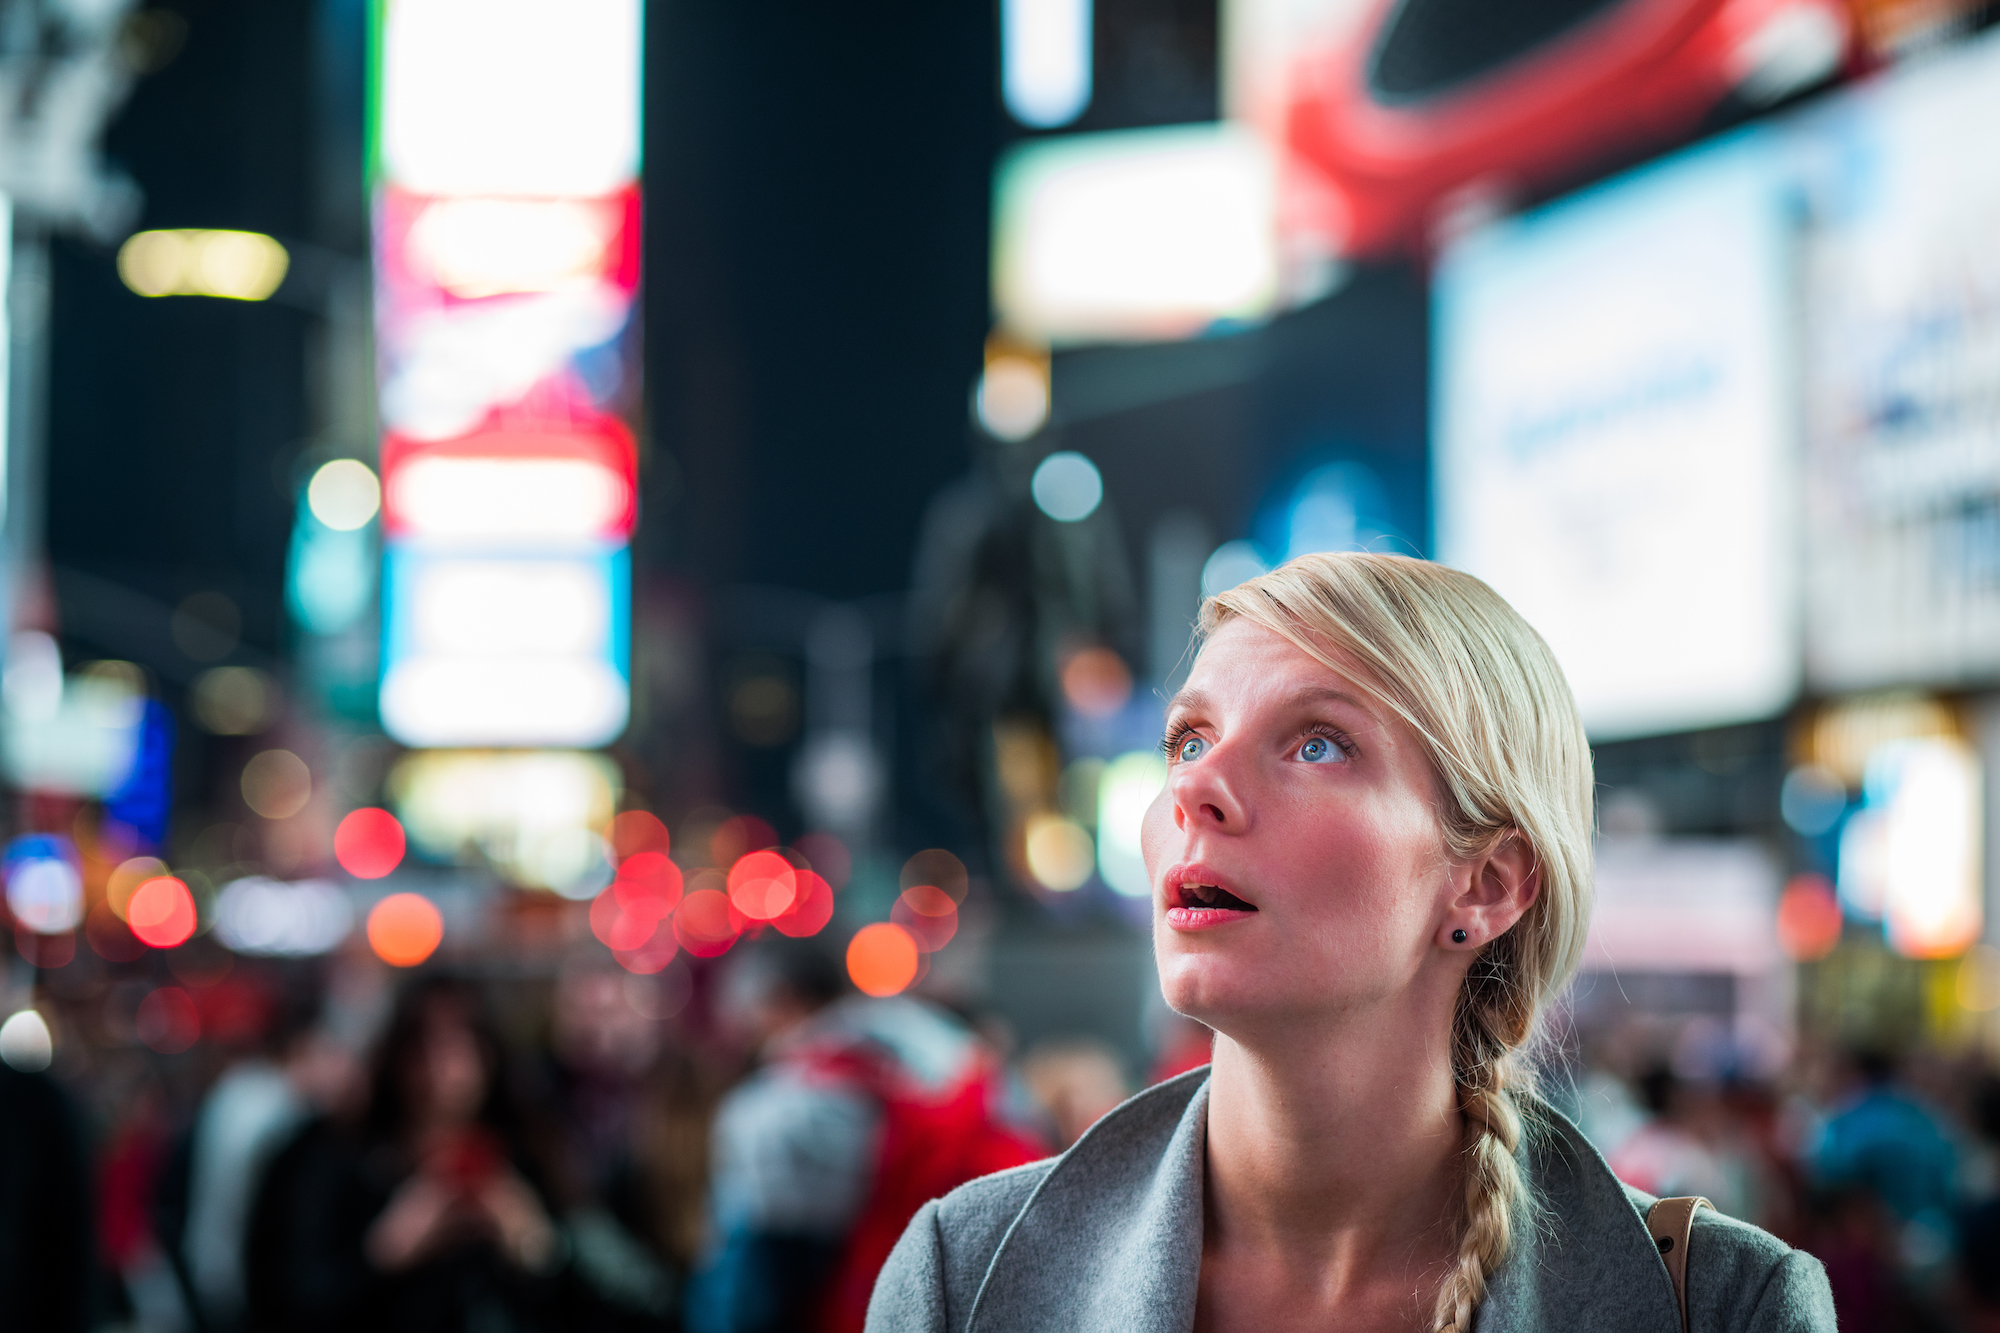 modernity can be confusing, woman looks lost in Times Square